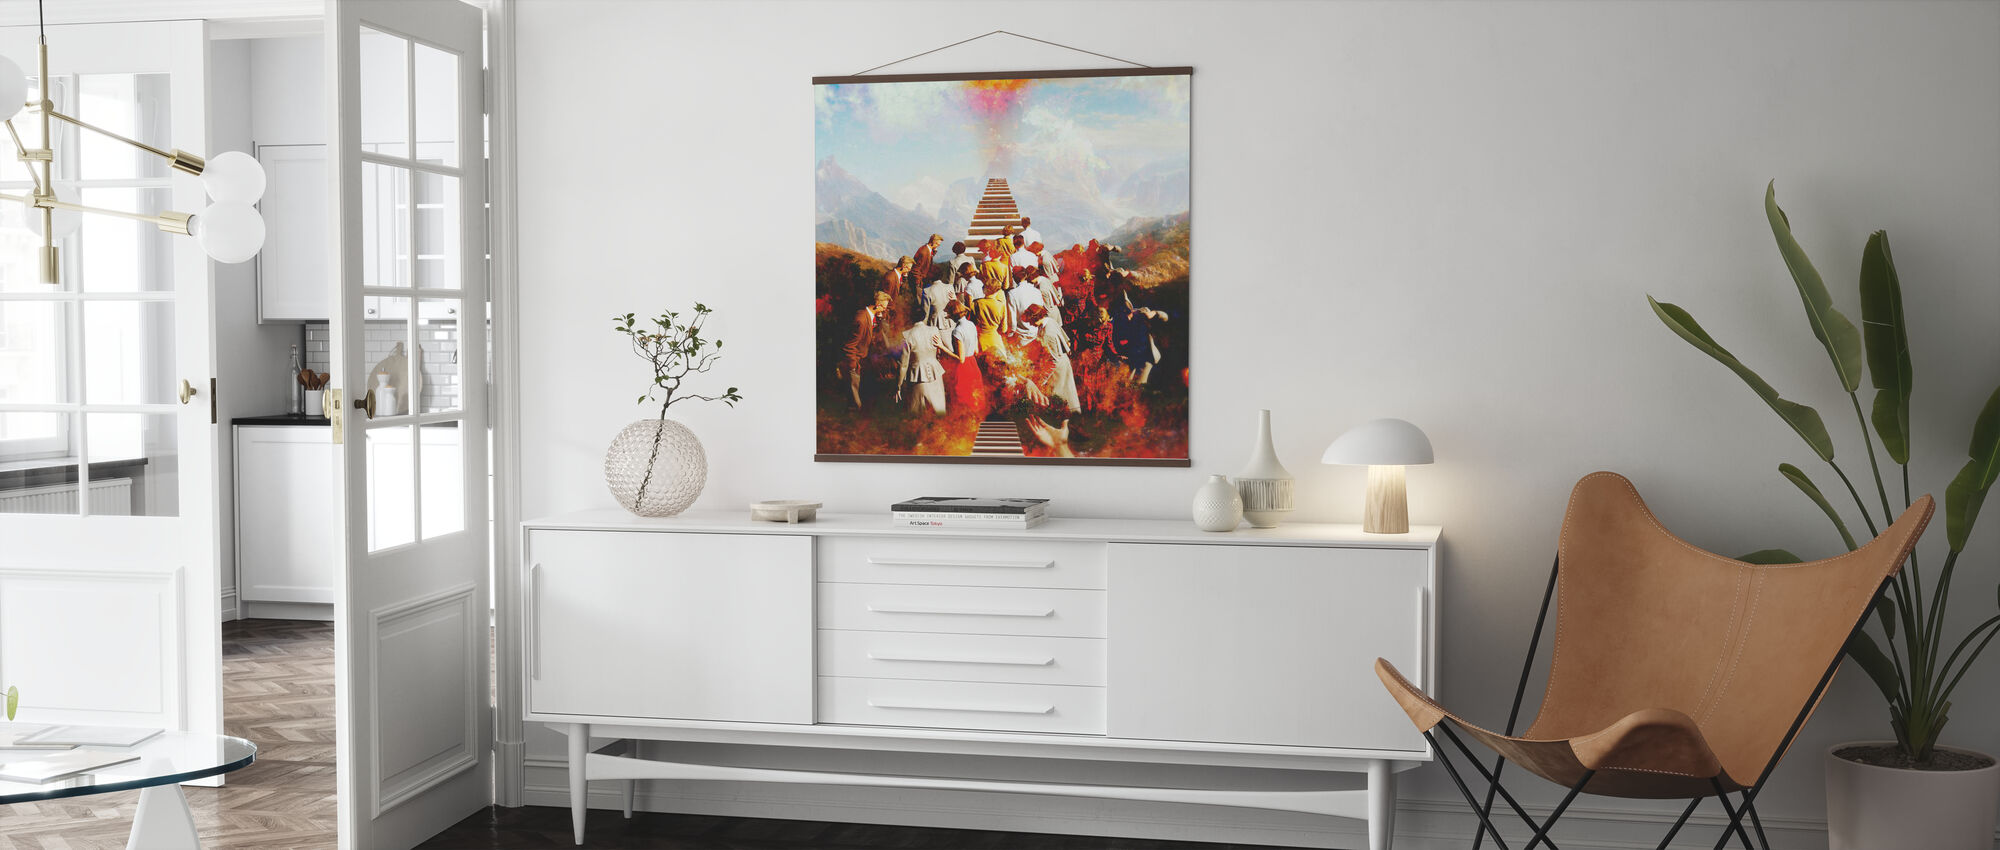 Ascension - Poster - Living Room